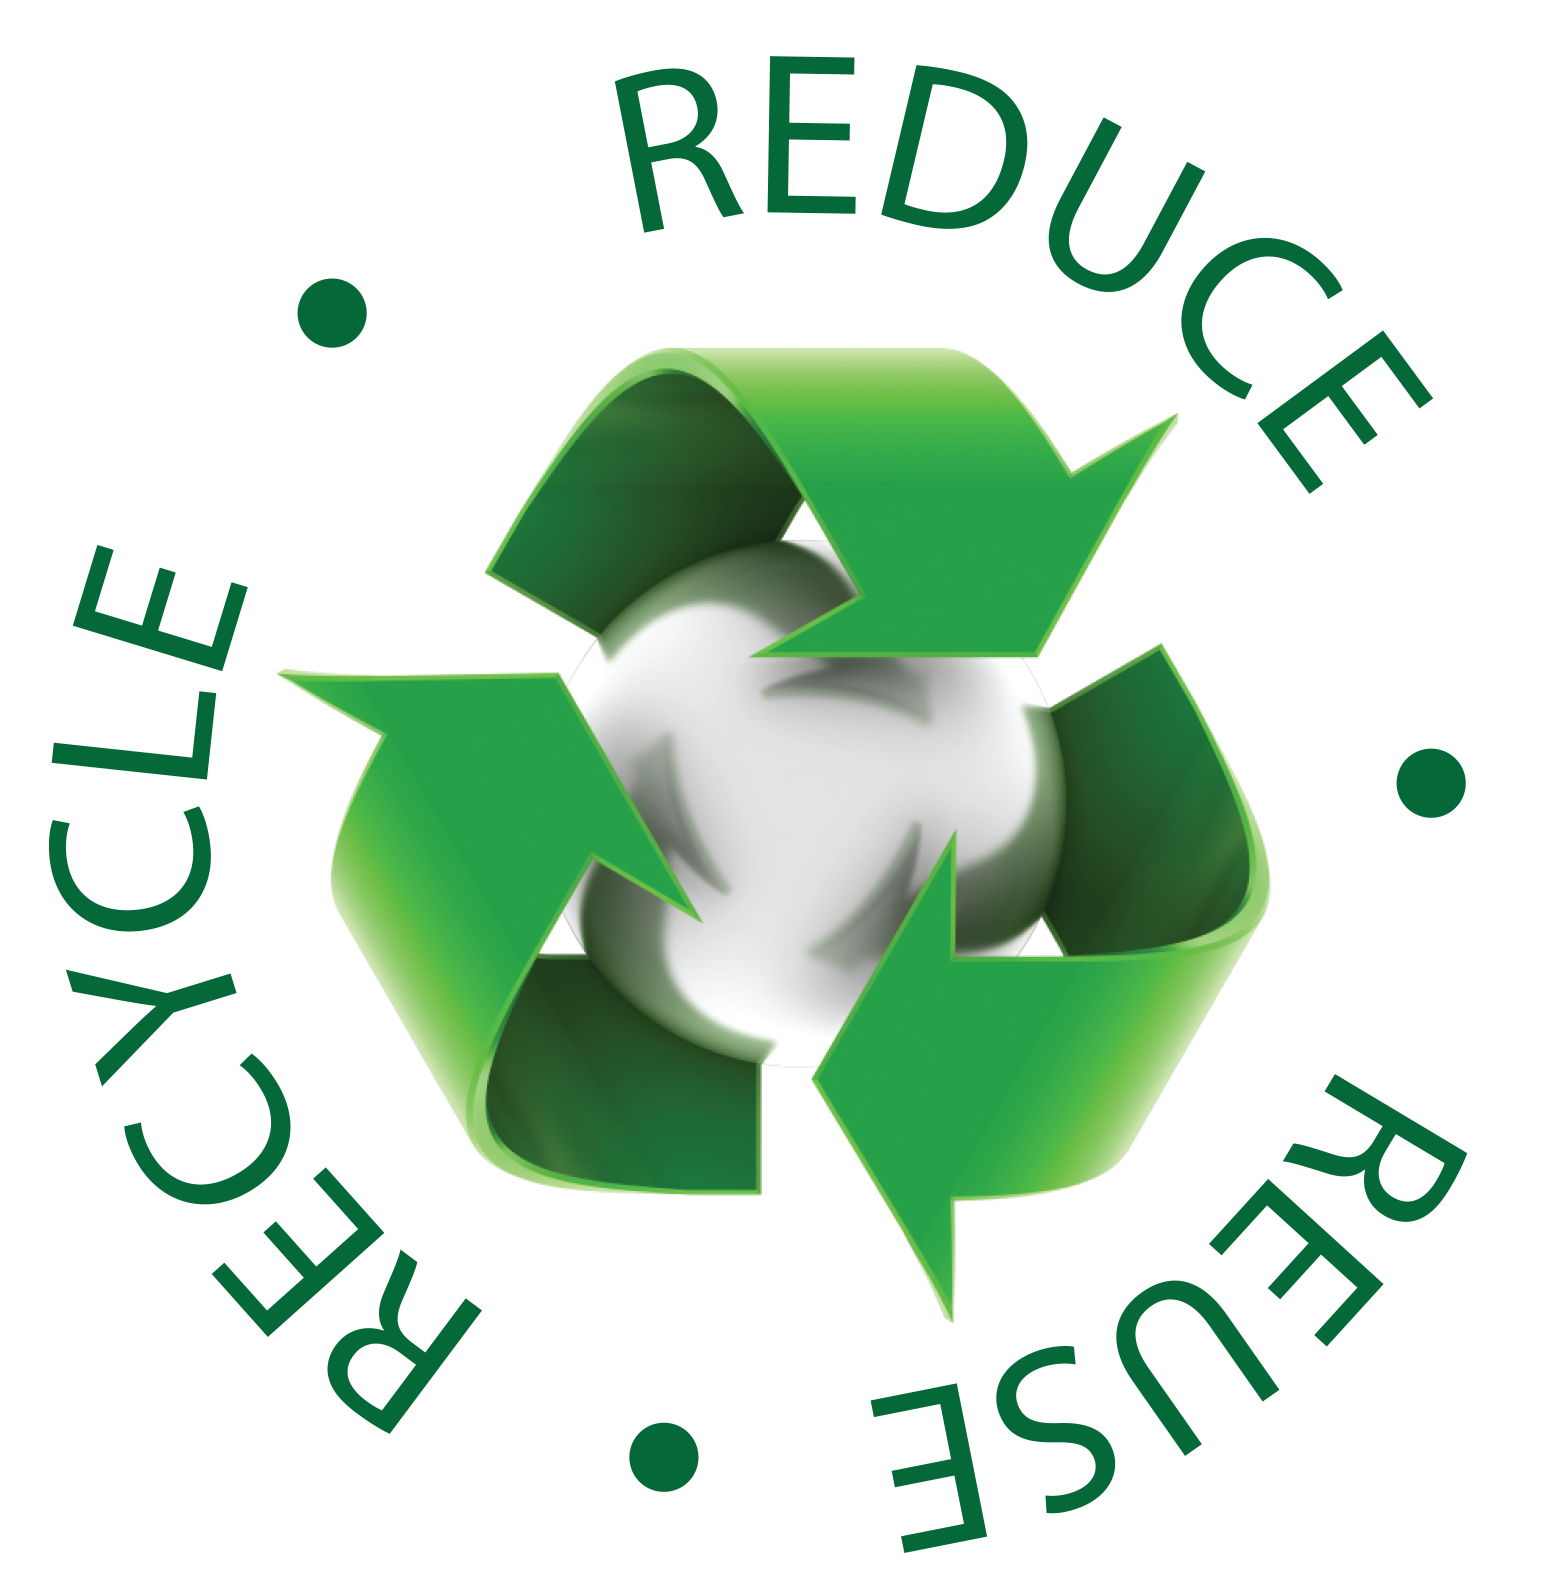 Reduce Reuse Recycle Clipart - ClipArt Best